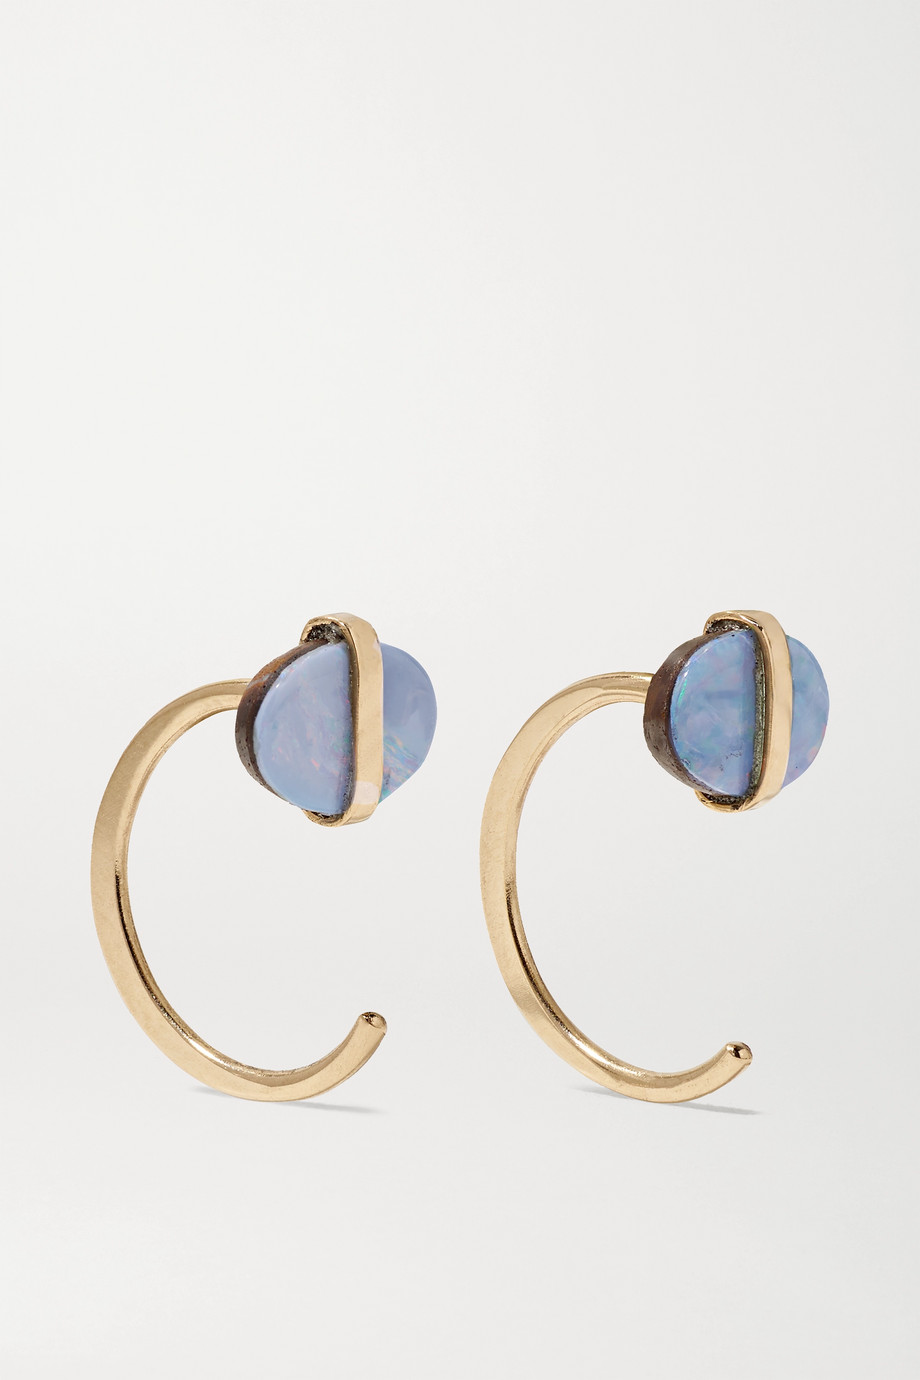 Melissa Joy Manning 14-karat gold opal hoop earrings